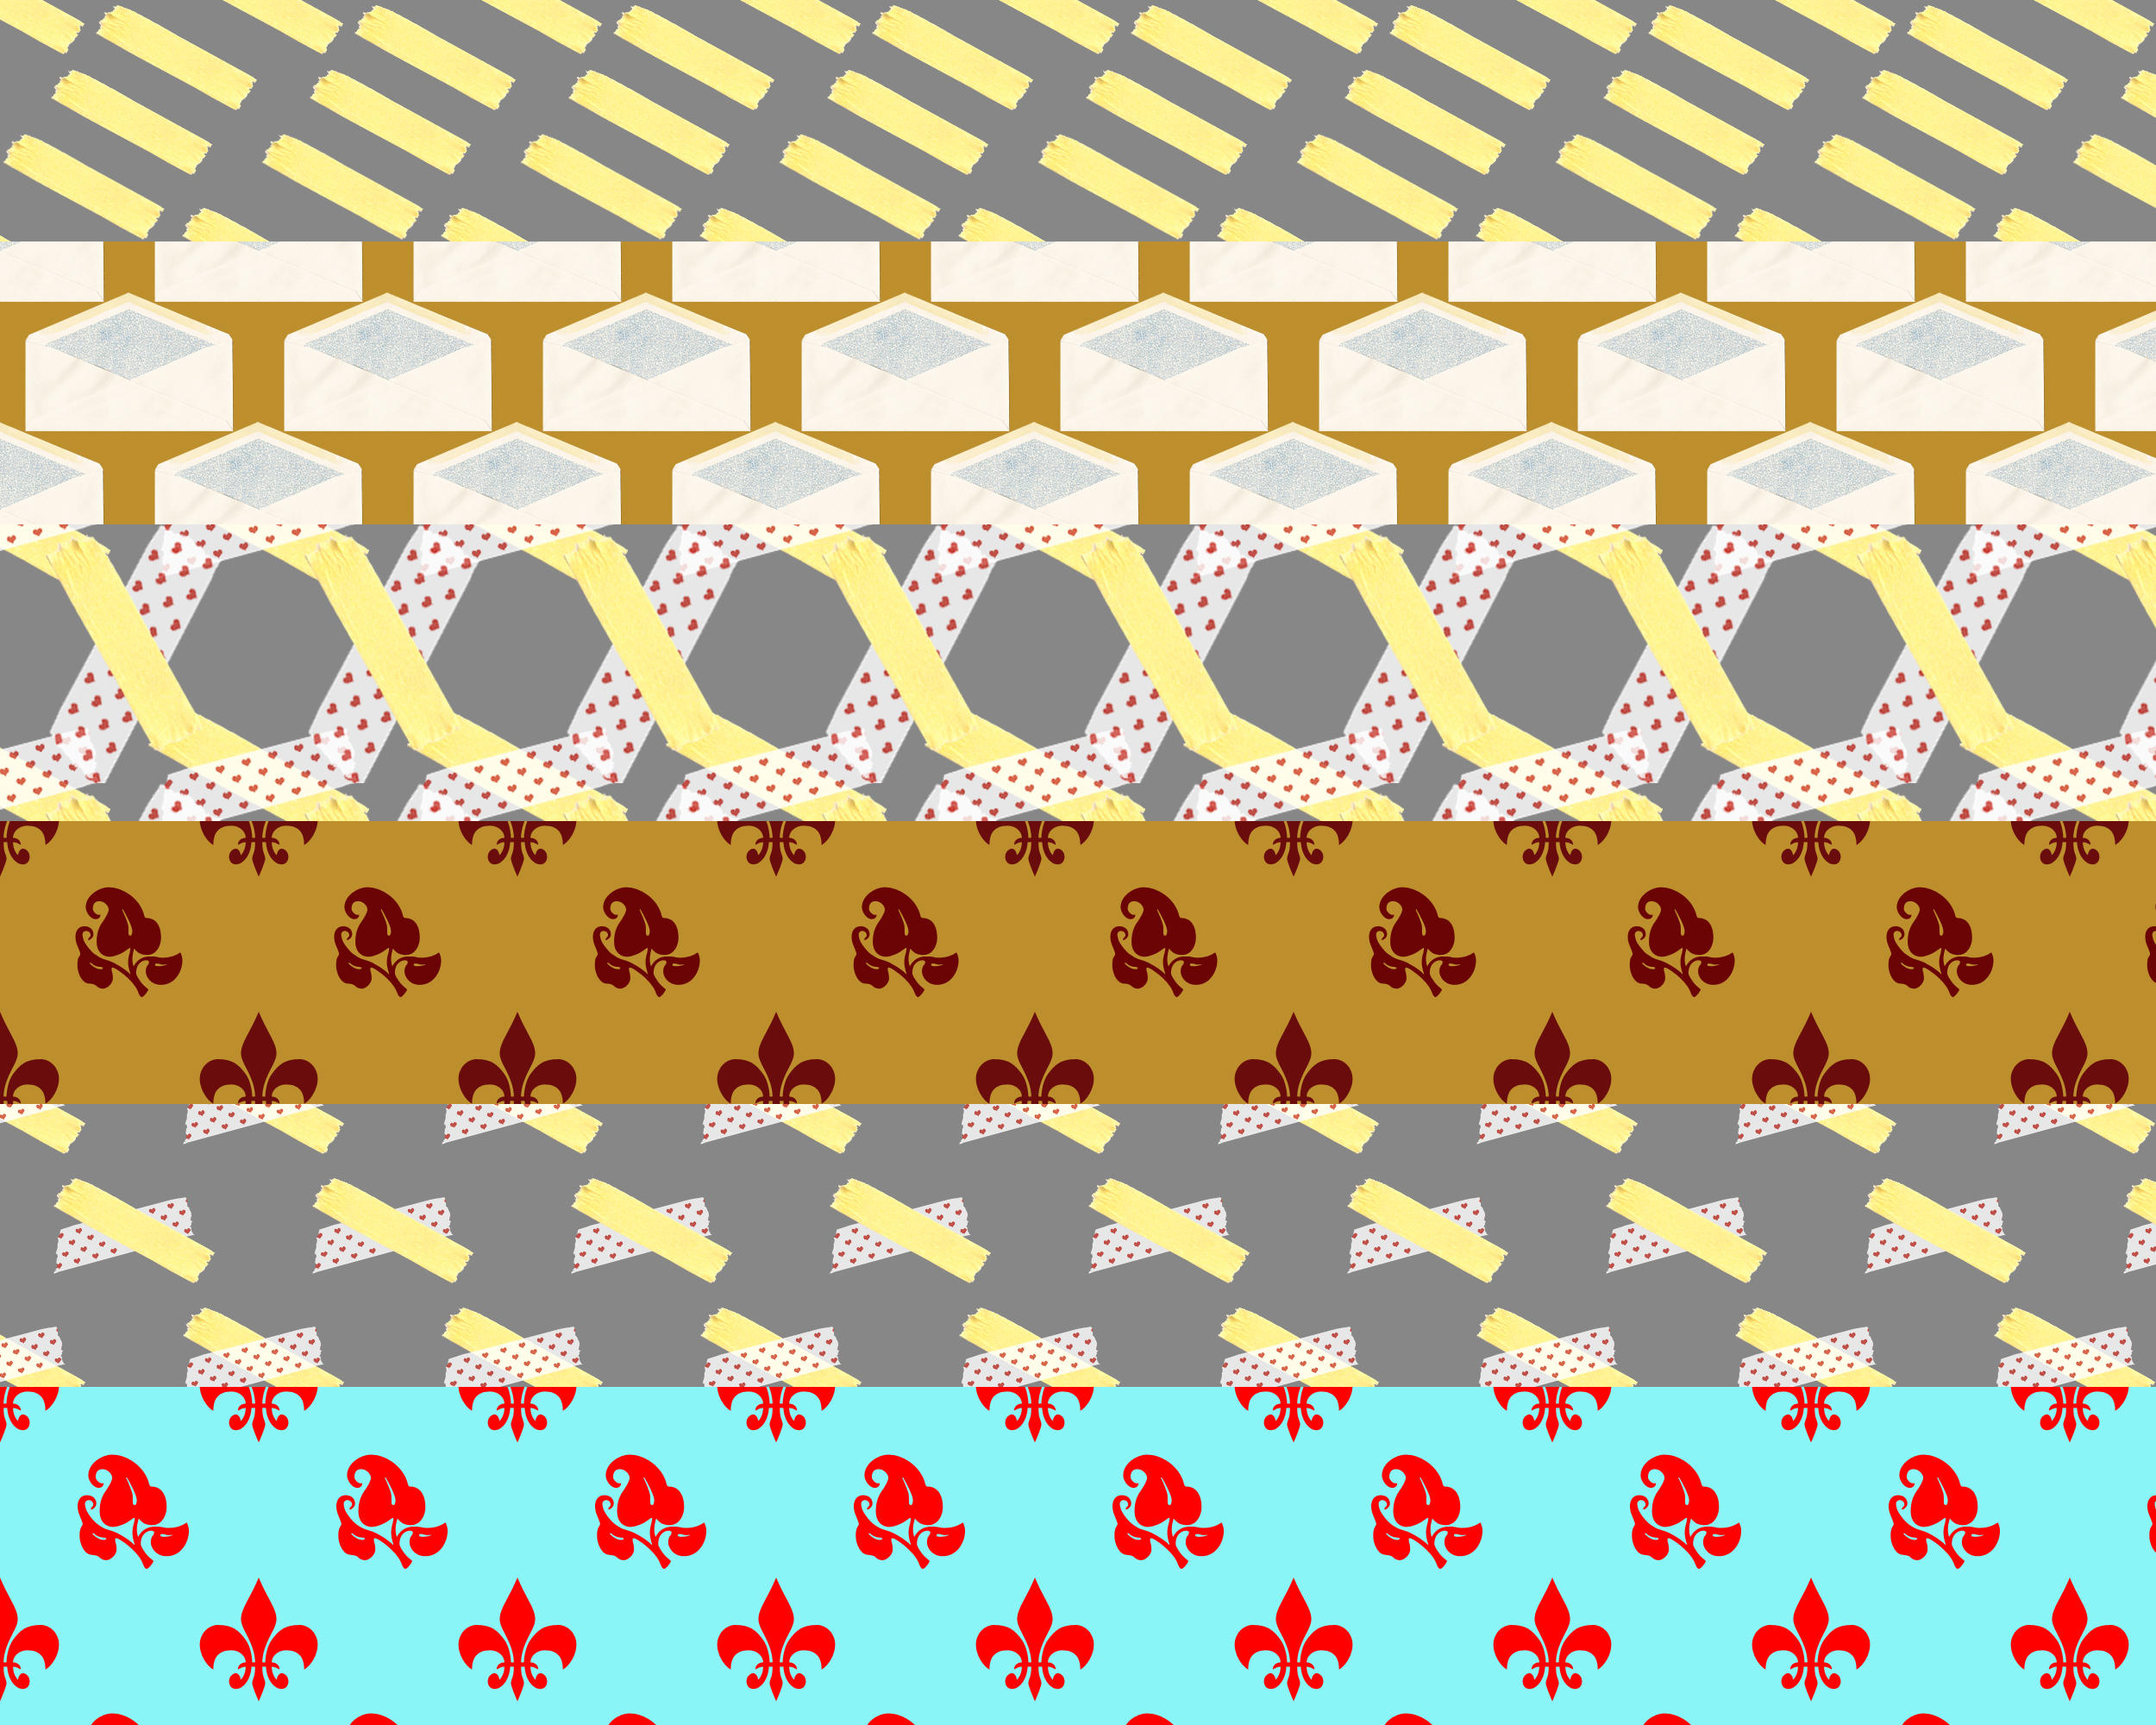 Various Tileable Patterns by JayTheJedi